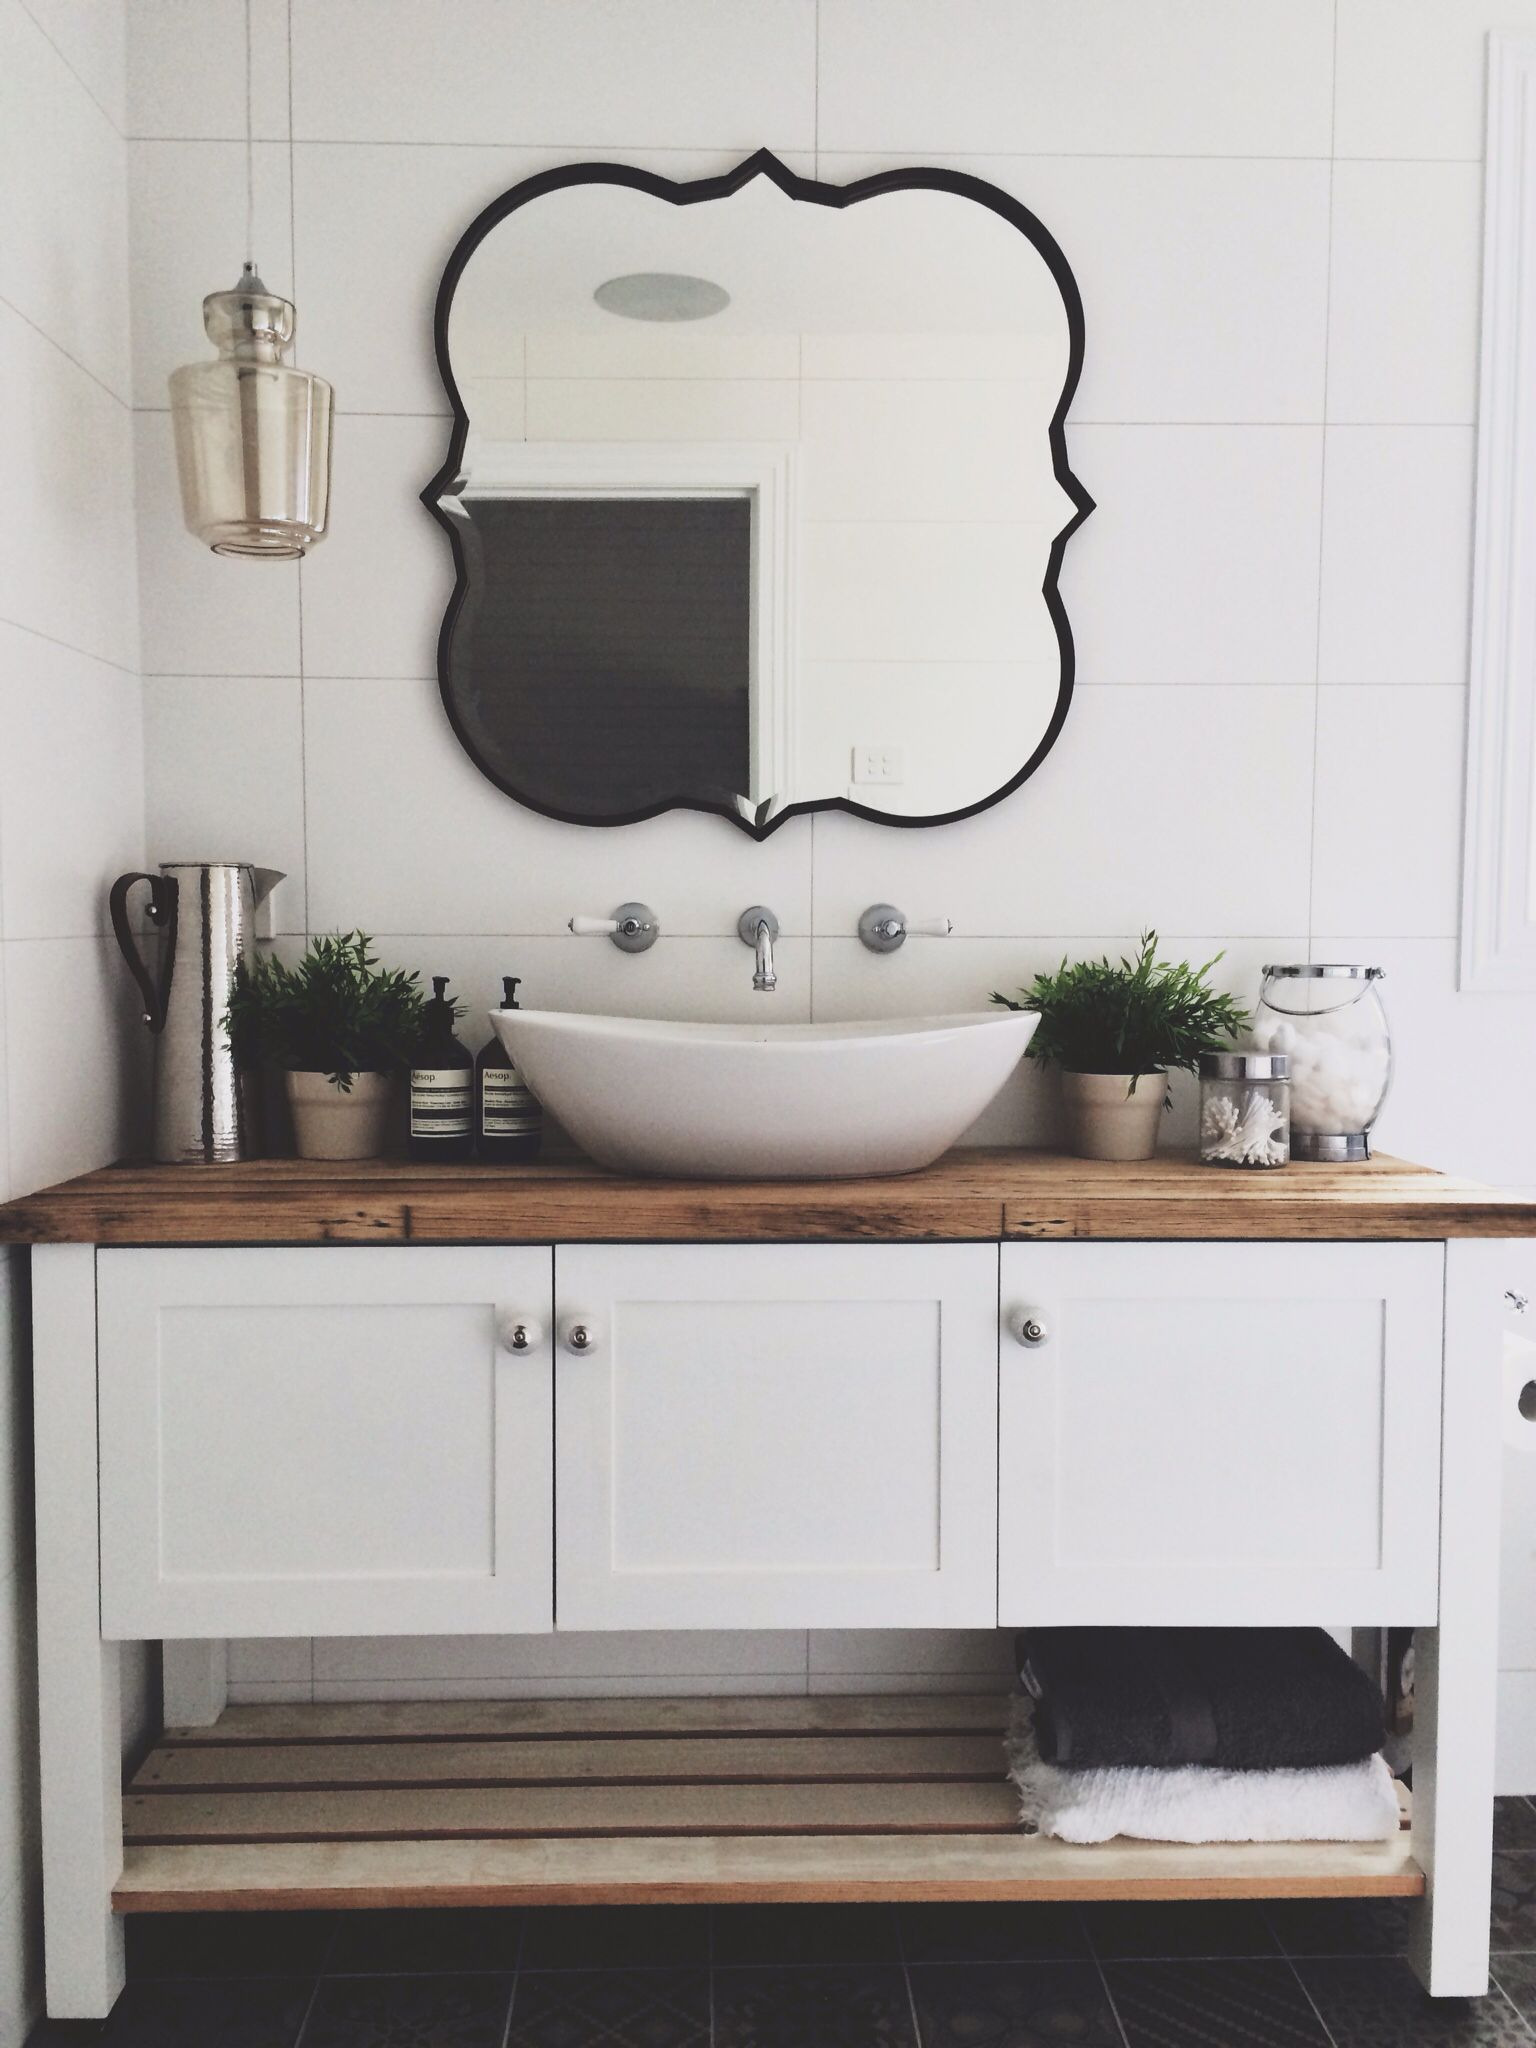 Modern country bathroom ideas - Modern Country Style Bathroom Ensuite Freestanding Vanity Basin White Mirror Design Decor Idea